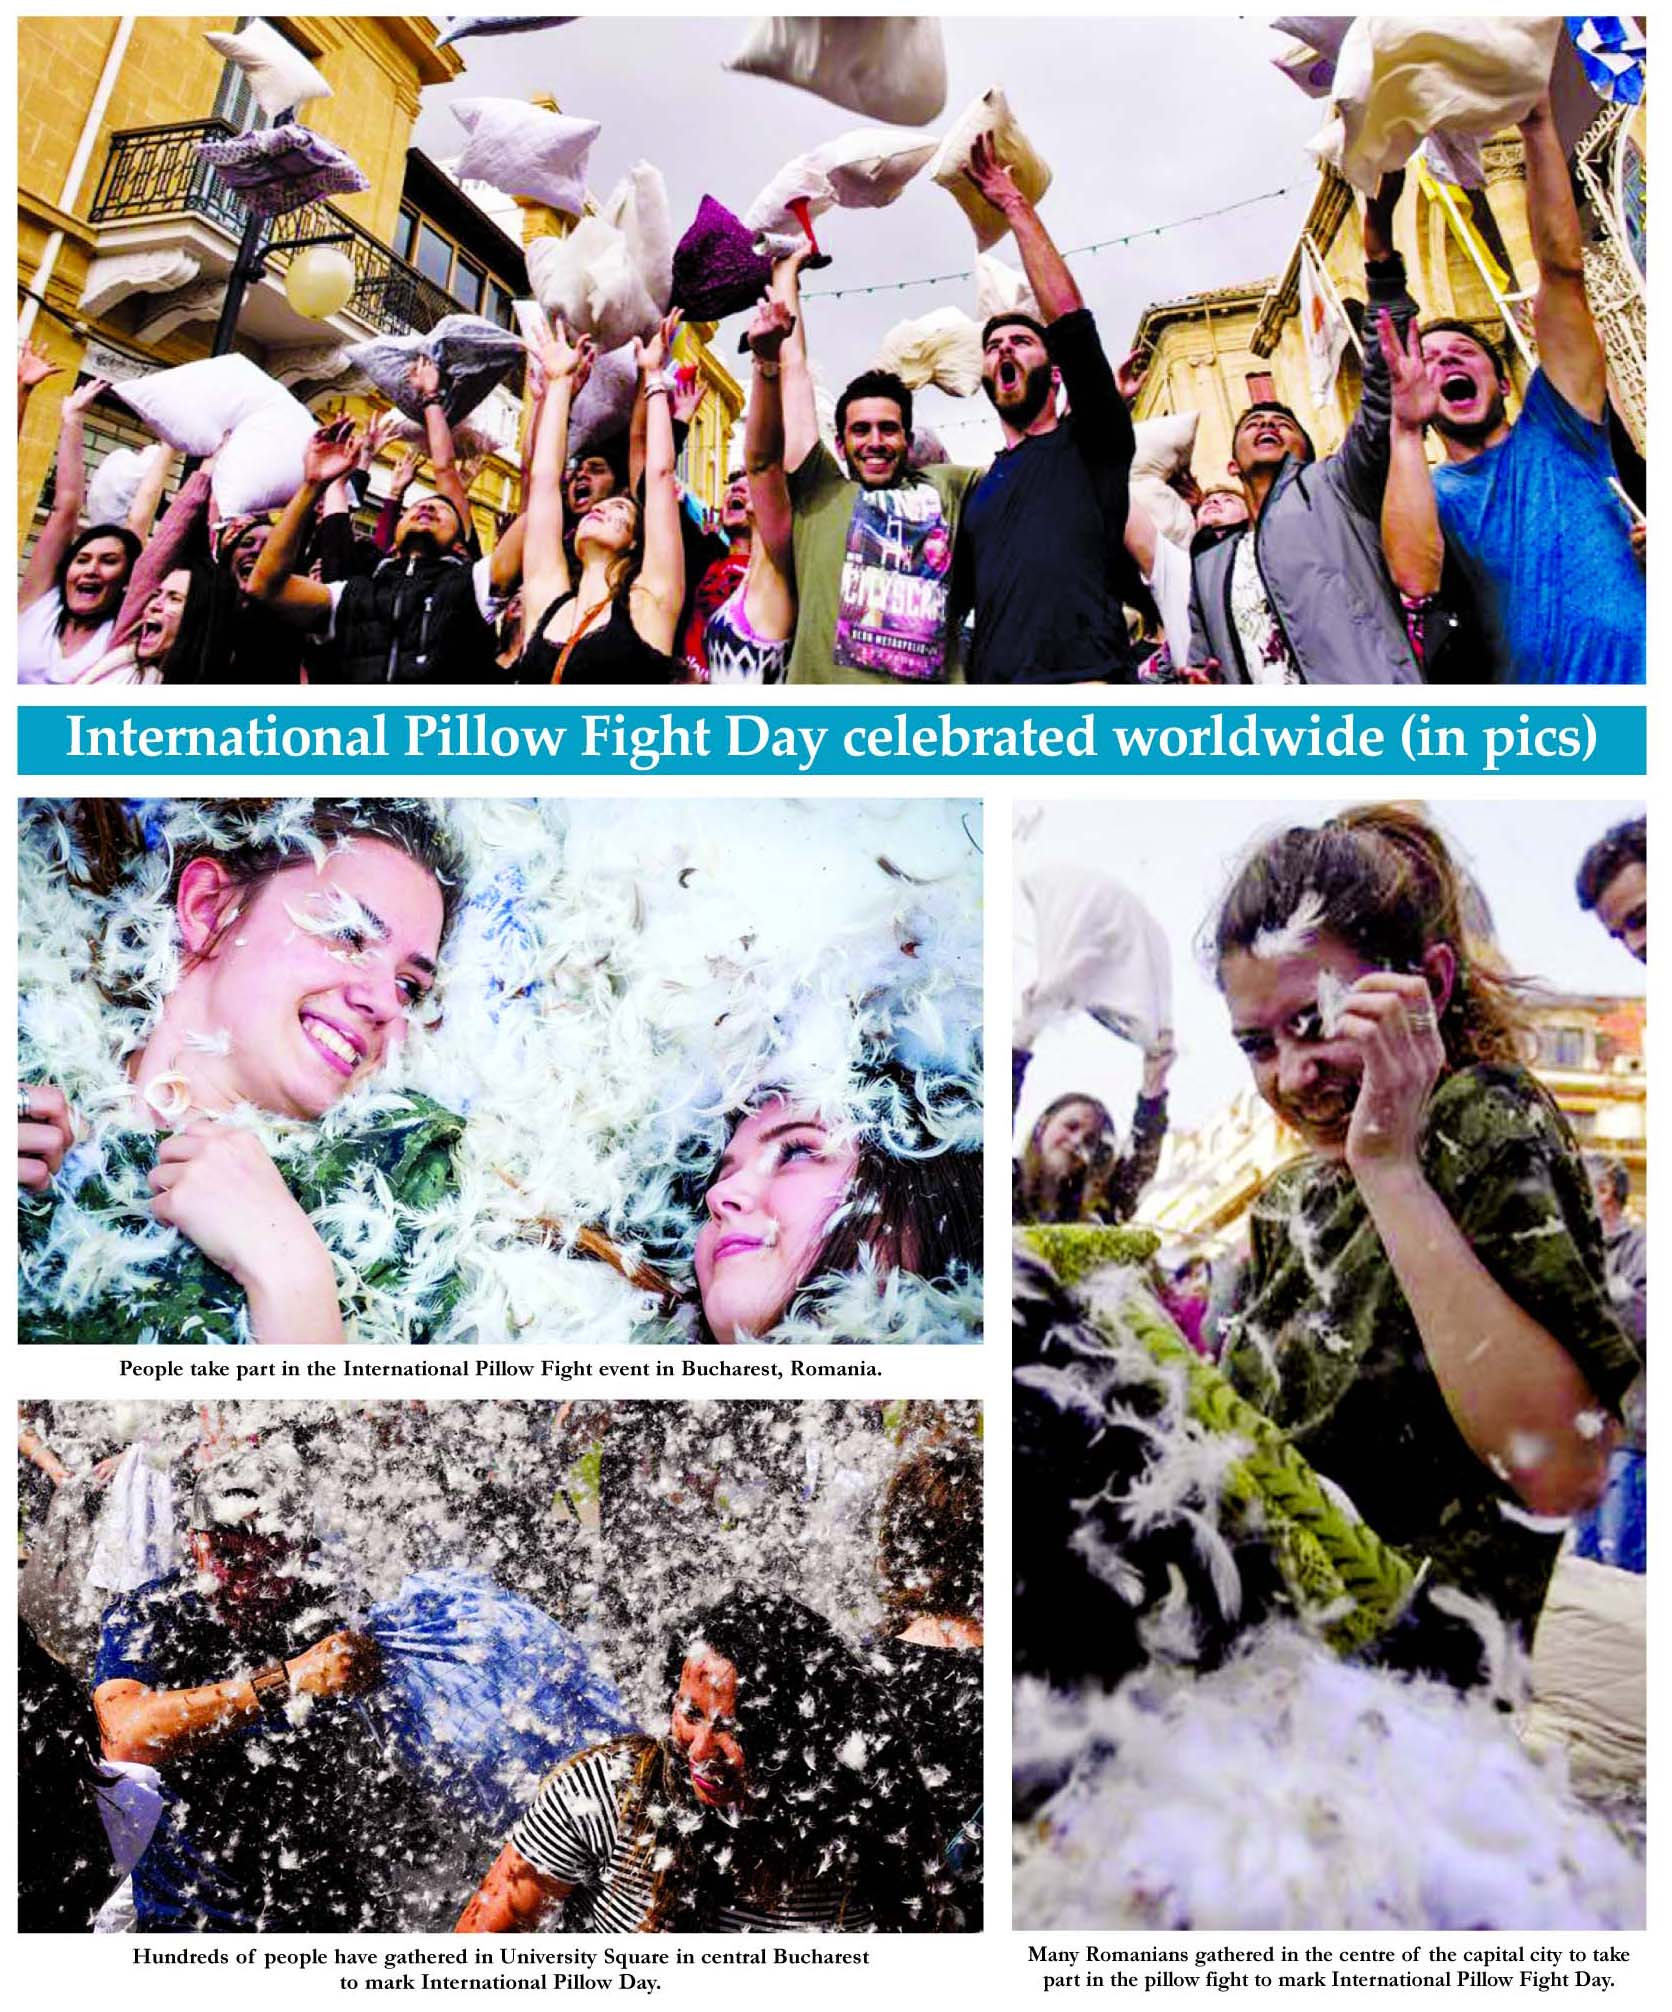 International Pillow Fight Day celebrated worldwide (in pics)